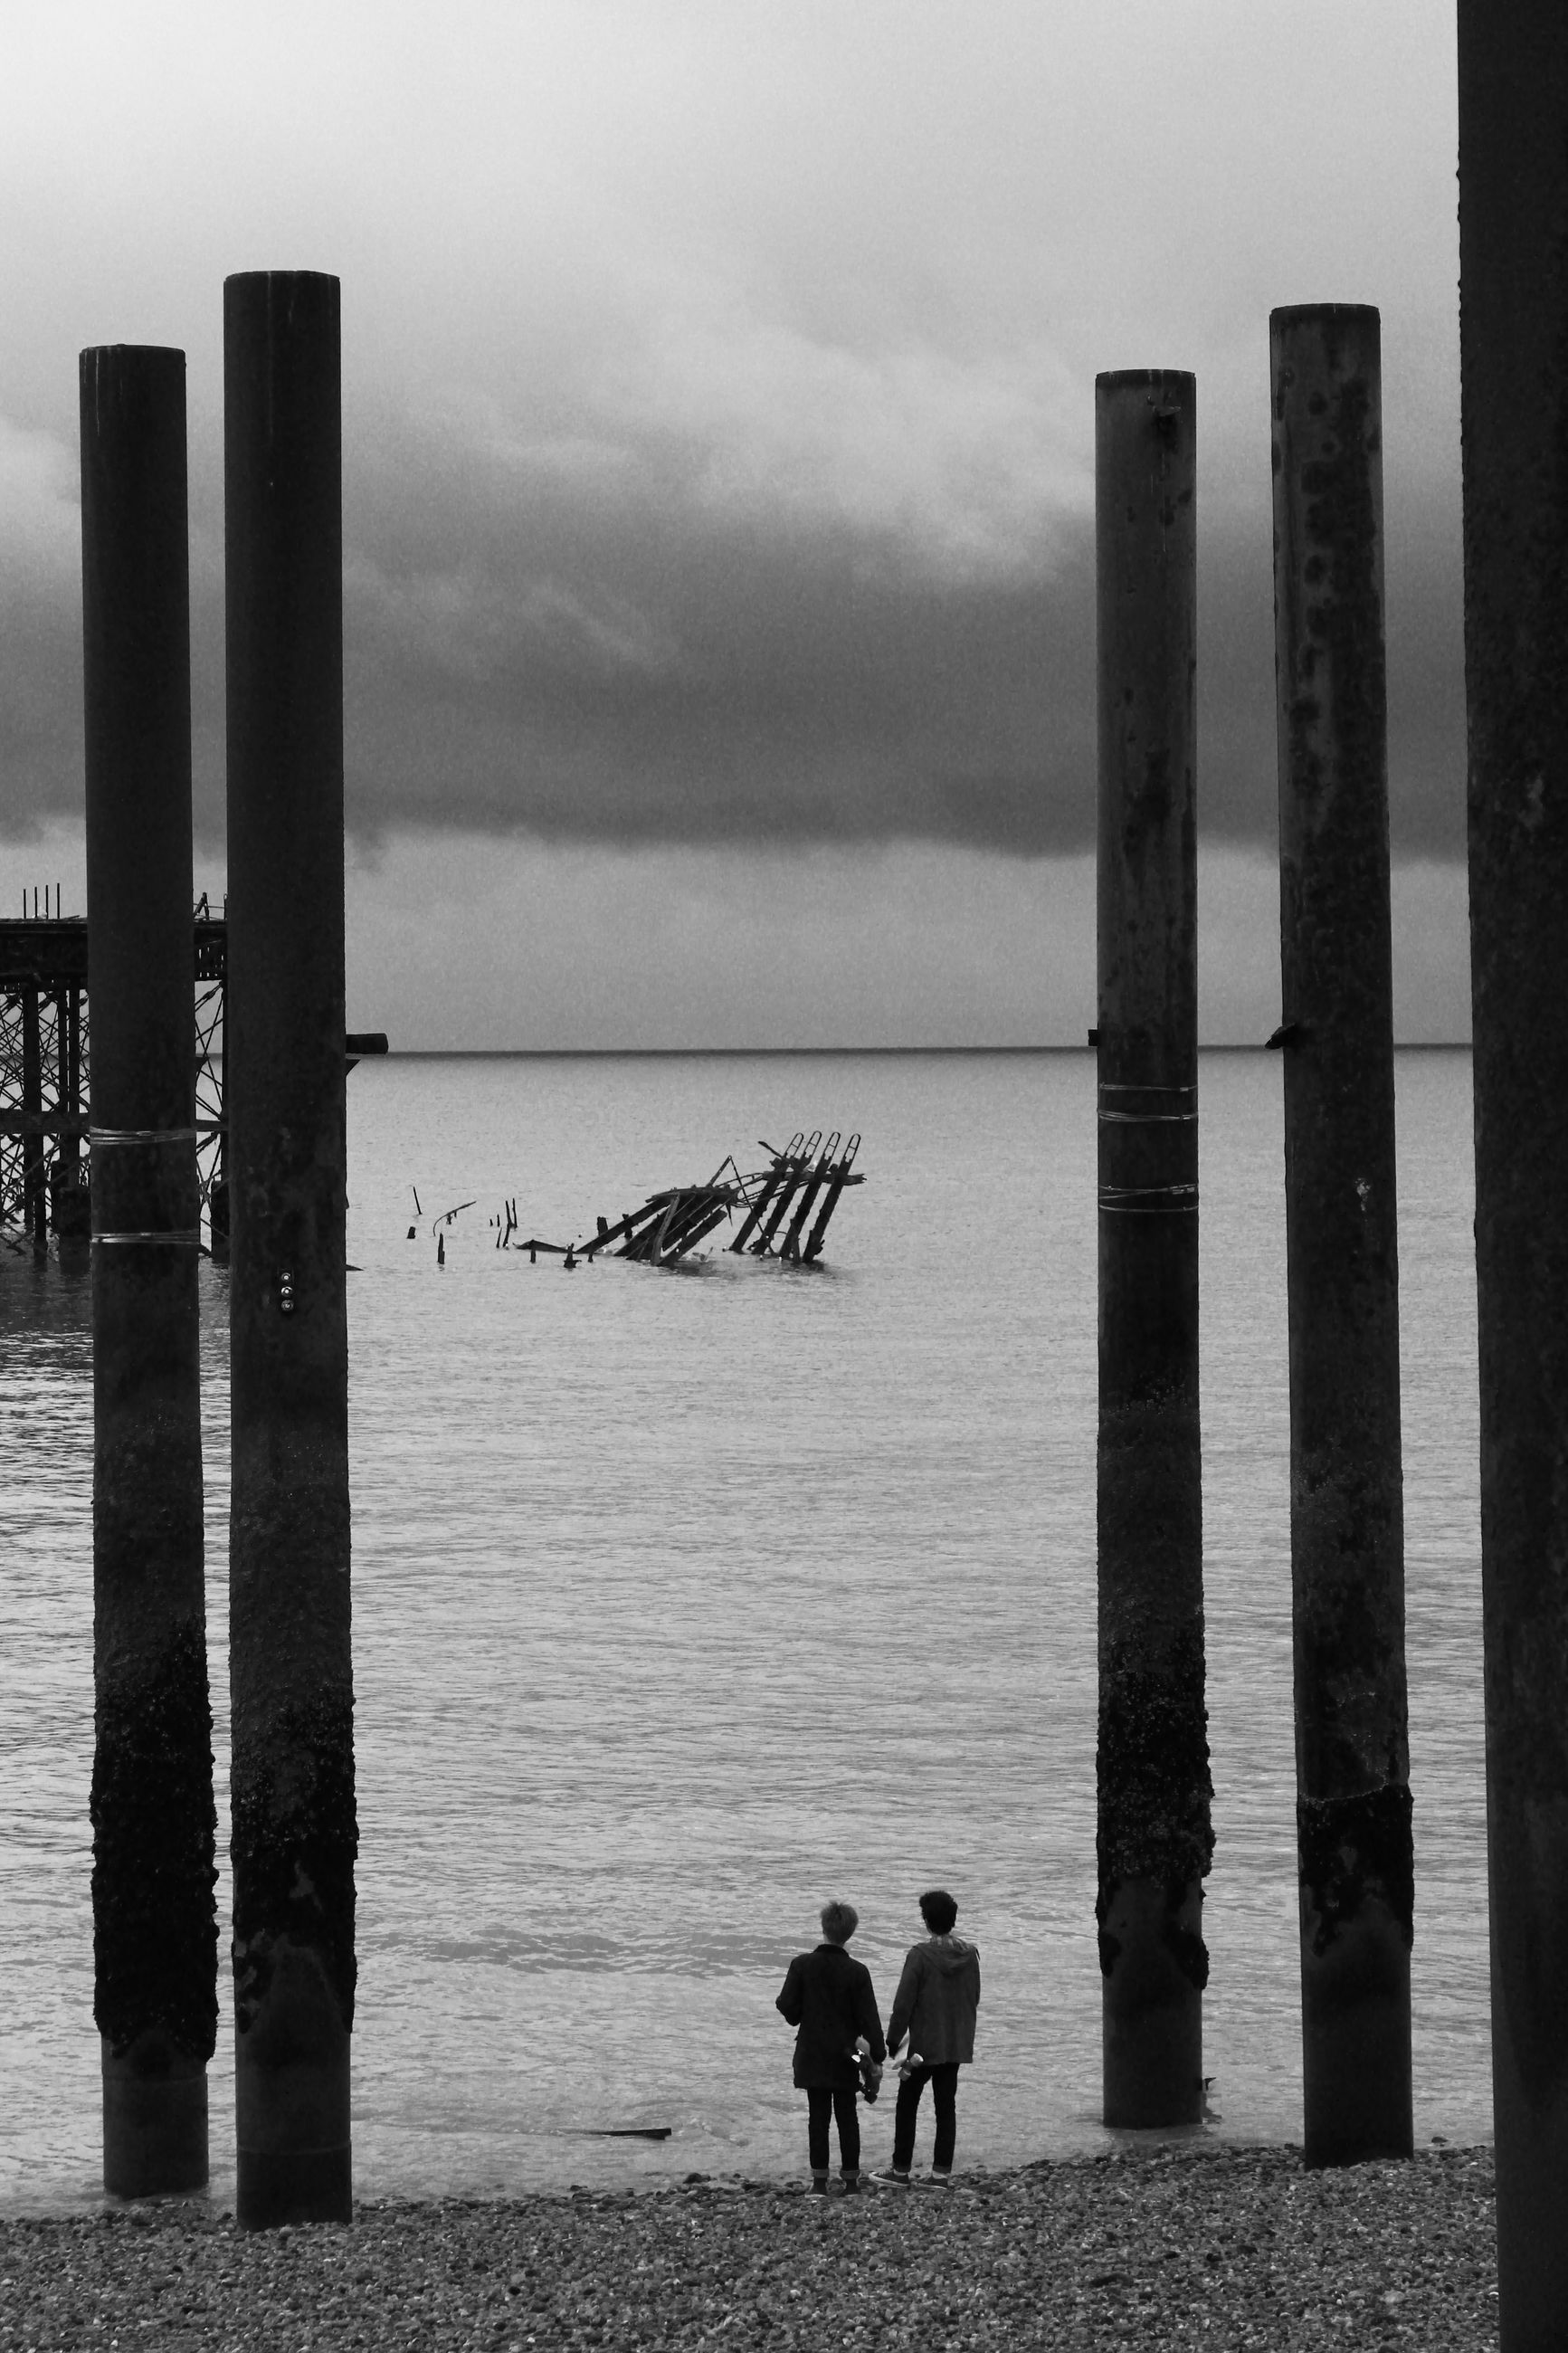 sea, sky, water, horizon over water, beach, men, built structure, cloud - sky, pier, silhouette, lifestyles, shore, person, architecture, leisure activity, standing, nature, wooden post